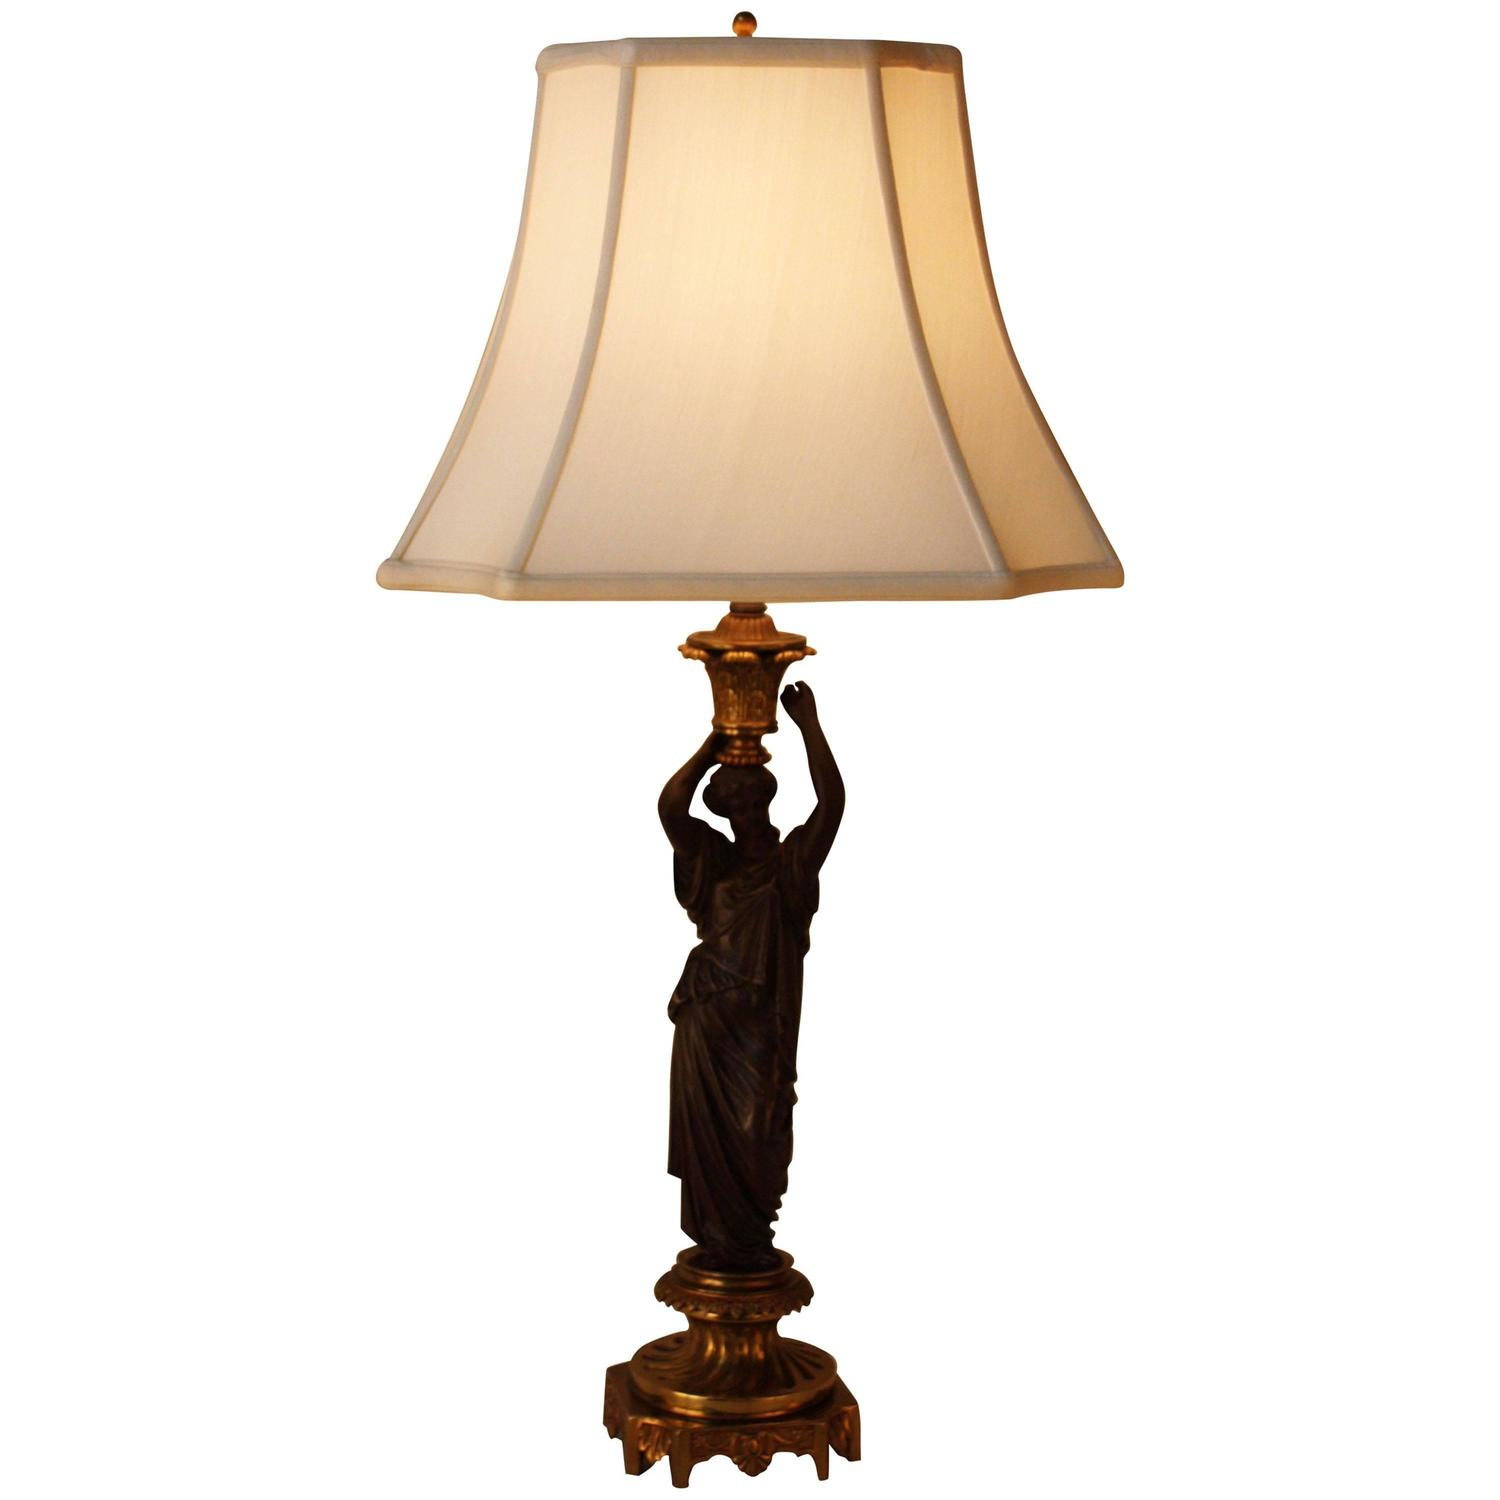 Bronze Sculpture Table Lamp For Sale At 1stdibs